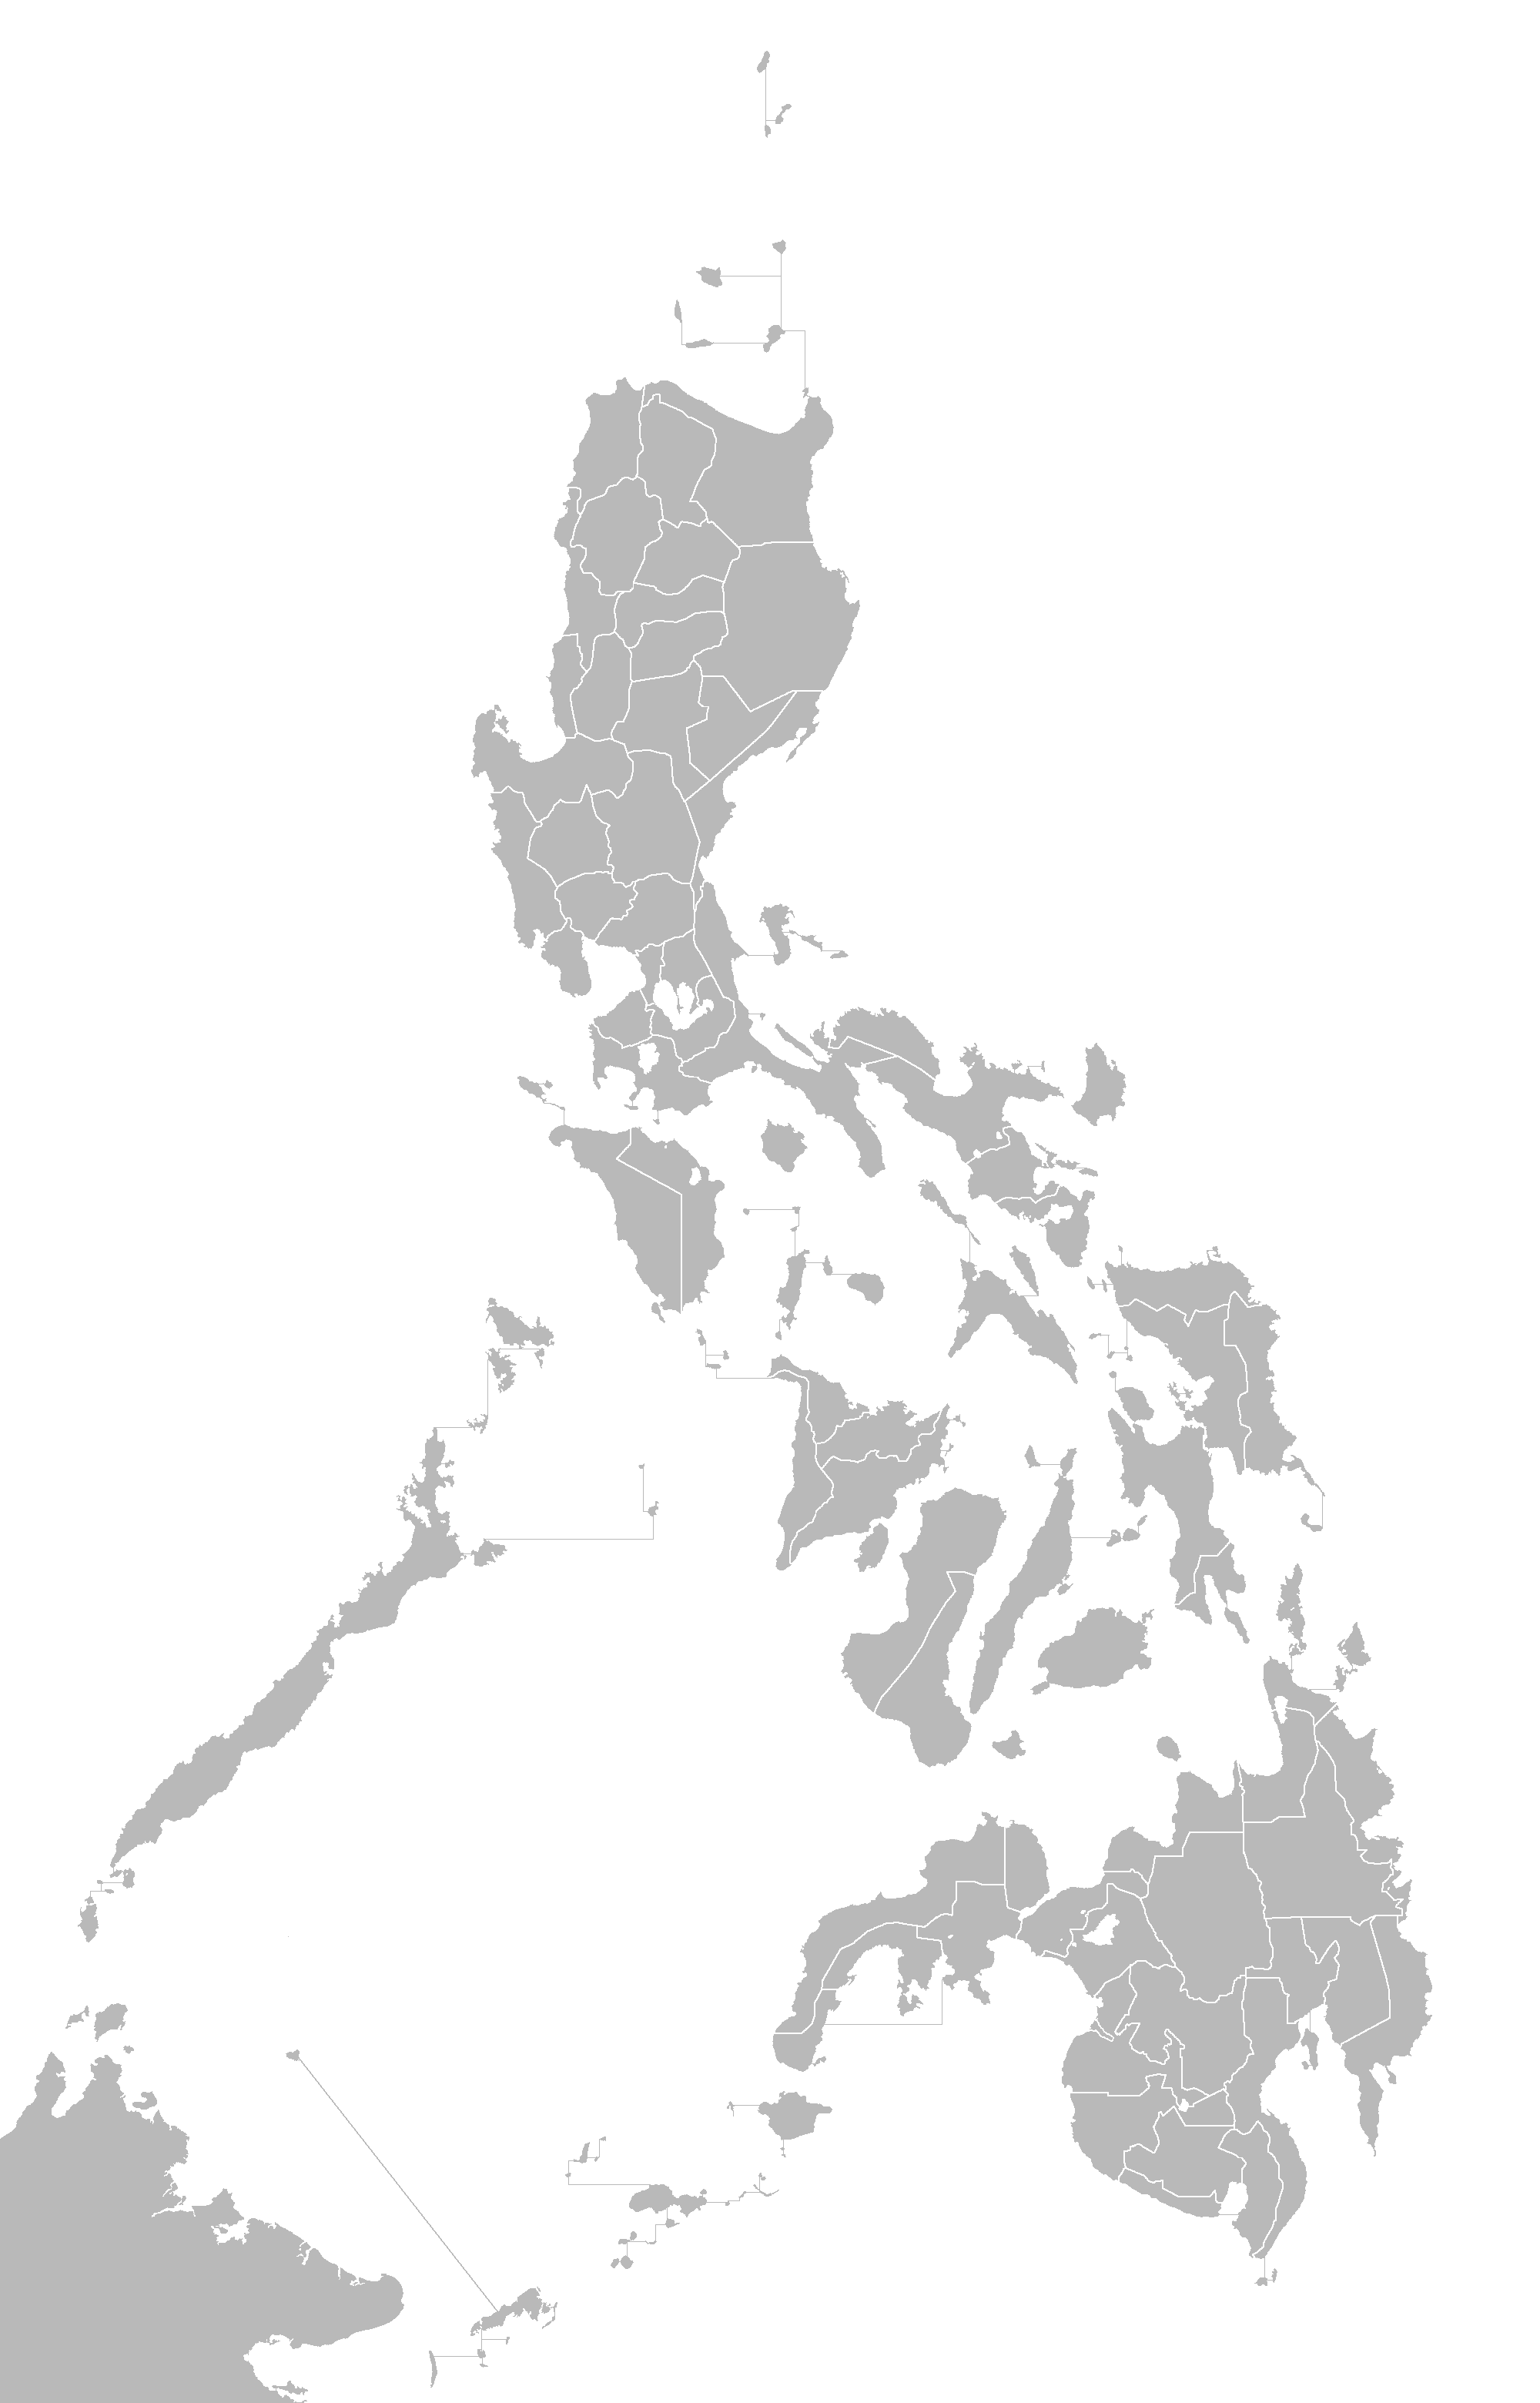 Fileblankmap philippinesg wikimedia commons fileblankmap philippinesg gumiabroncs